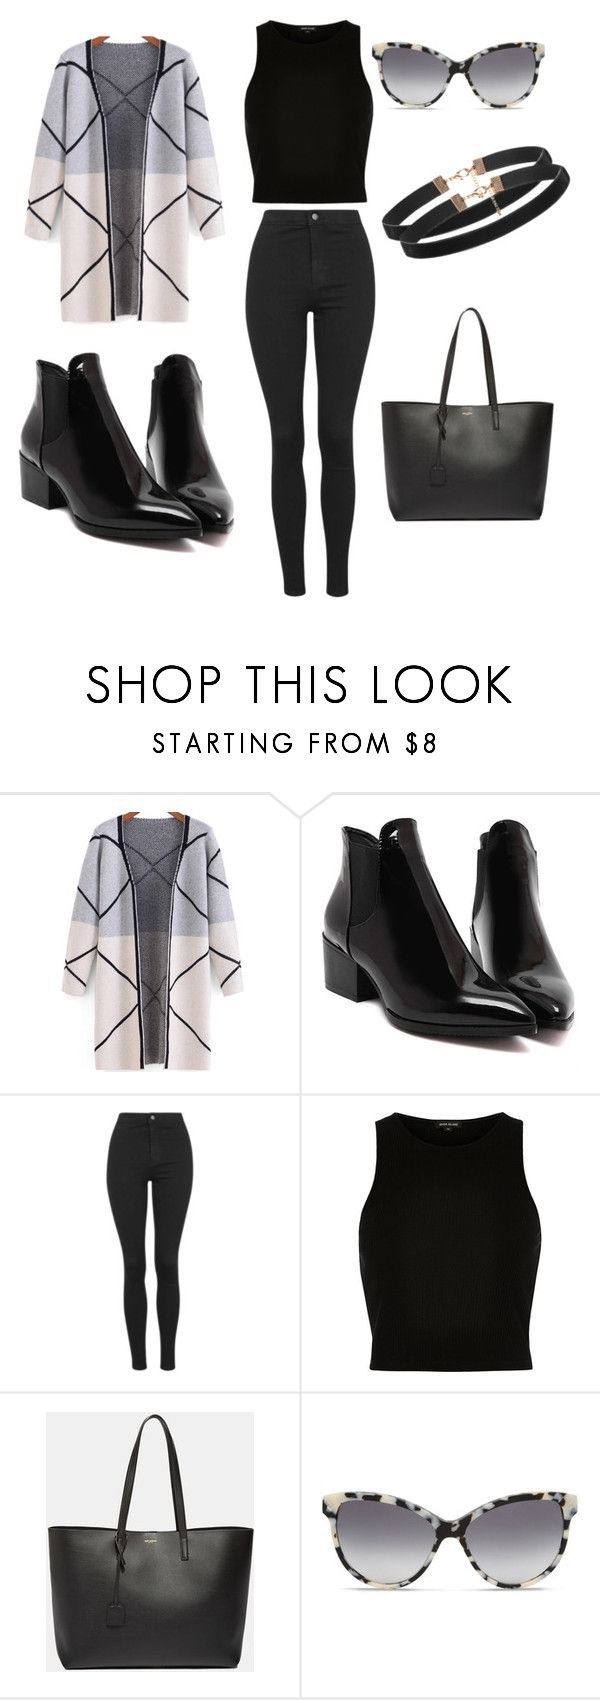 """""""Untitled #13"""" by molly-mahaffey ❤ liked on Polyvore featuring Topshop, River Island, Yves Saint Laurent and STELLA McCARTNEY"""